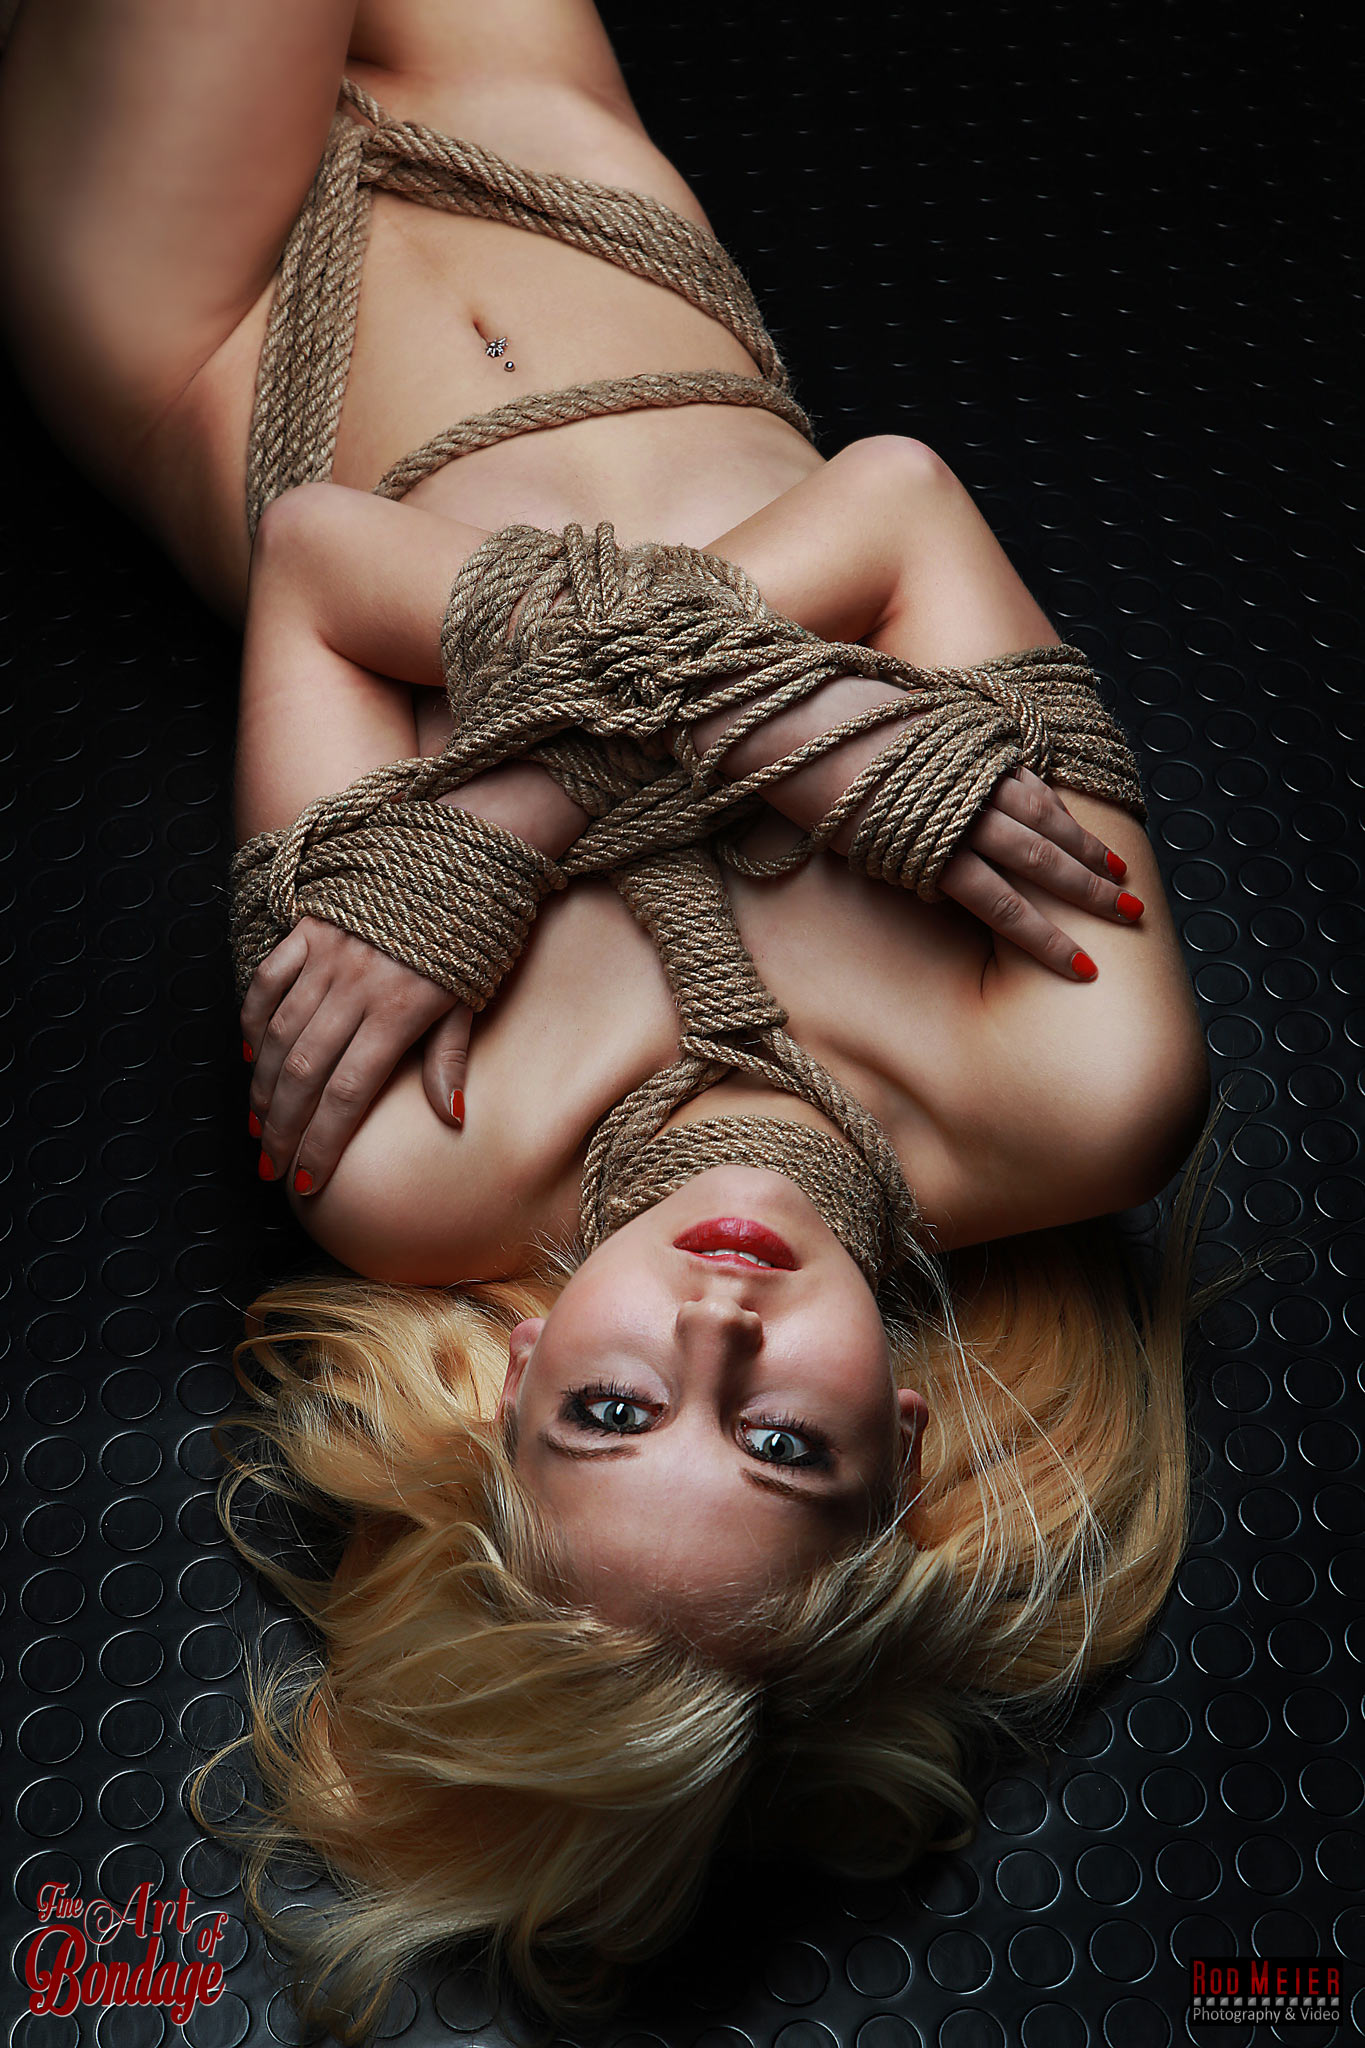 Watching nude photograph bondage WHITE